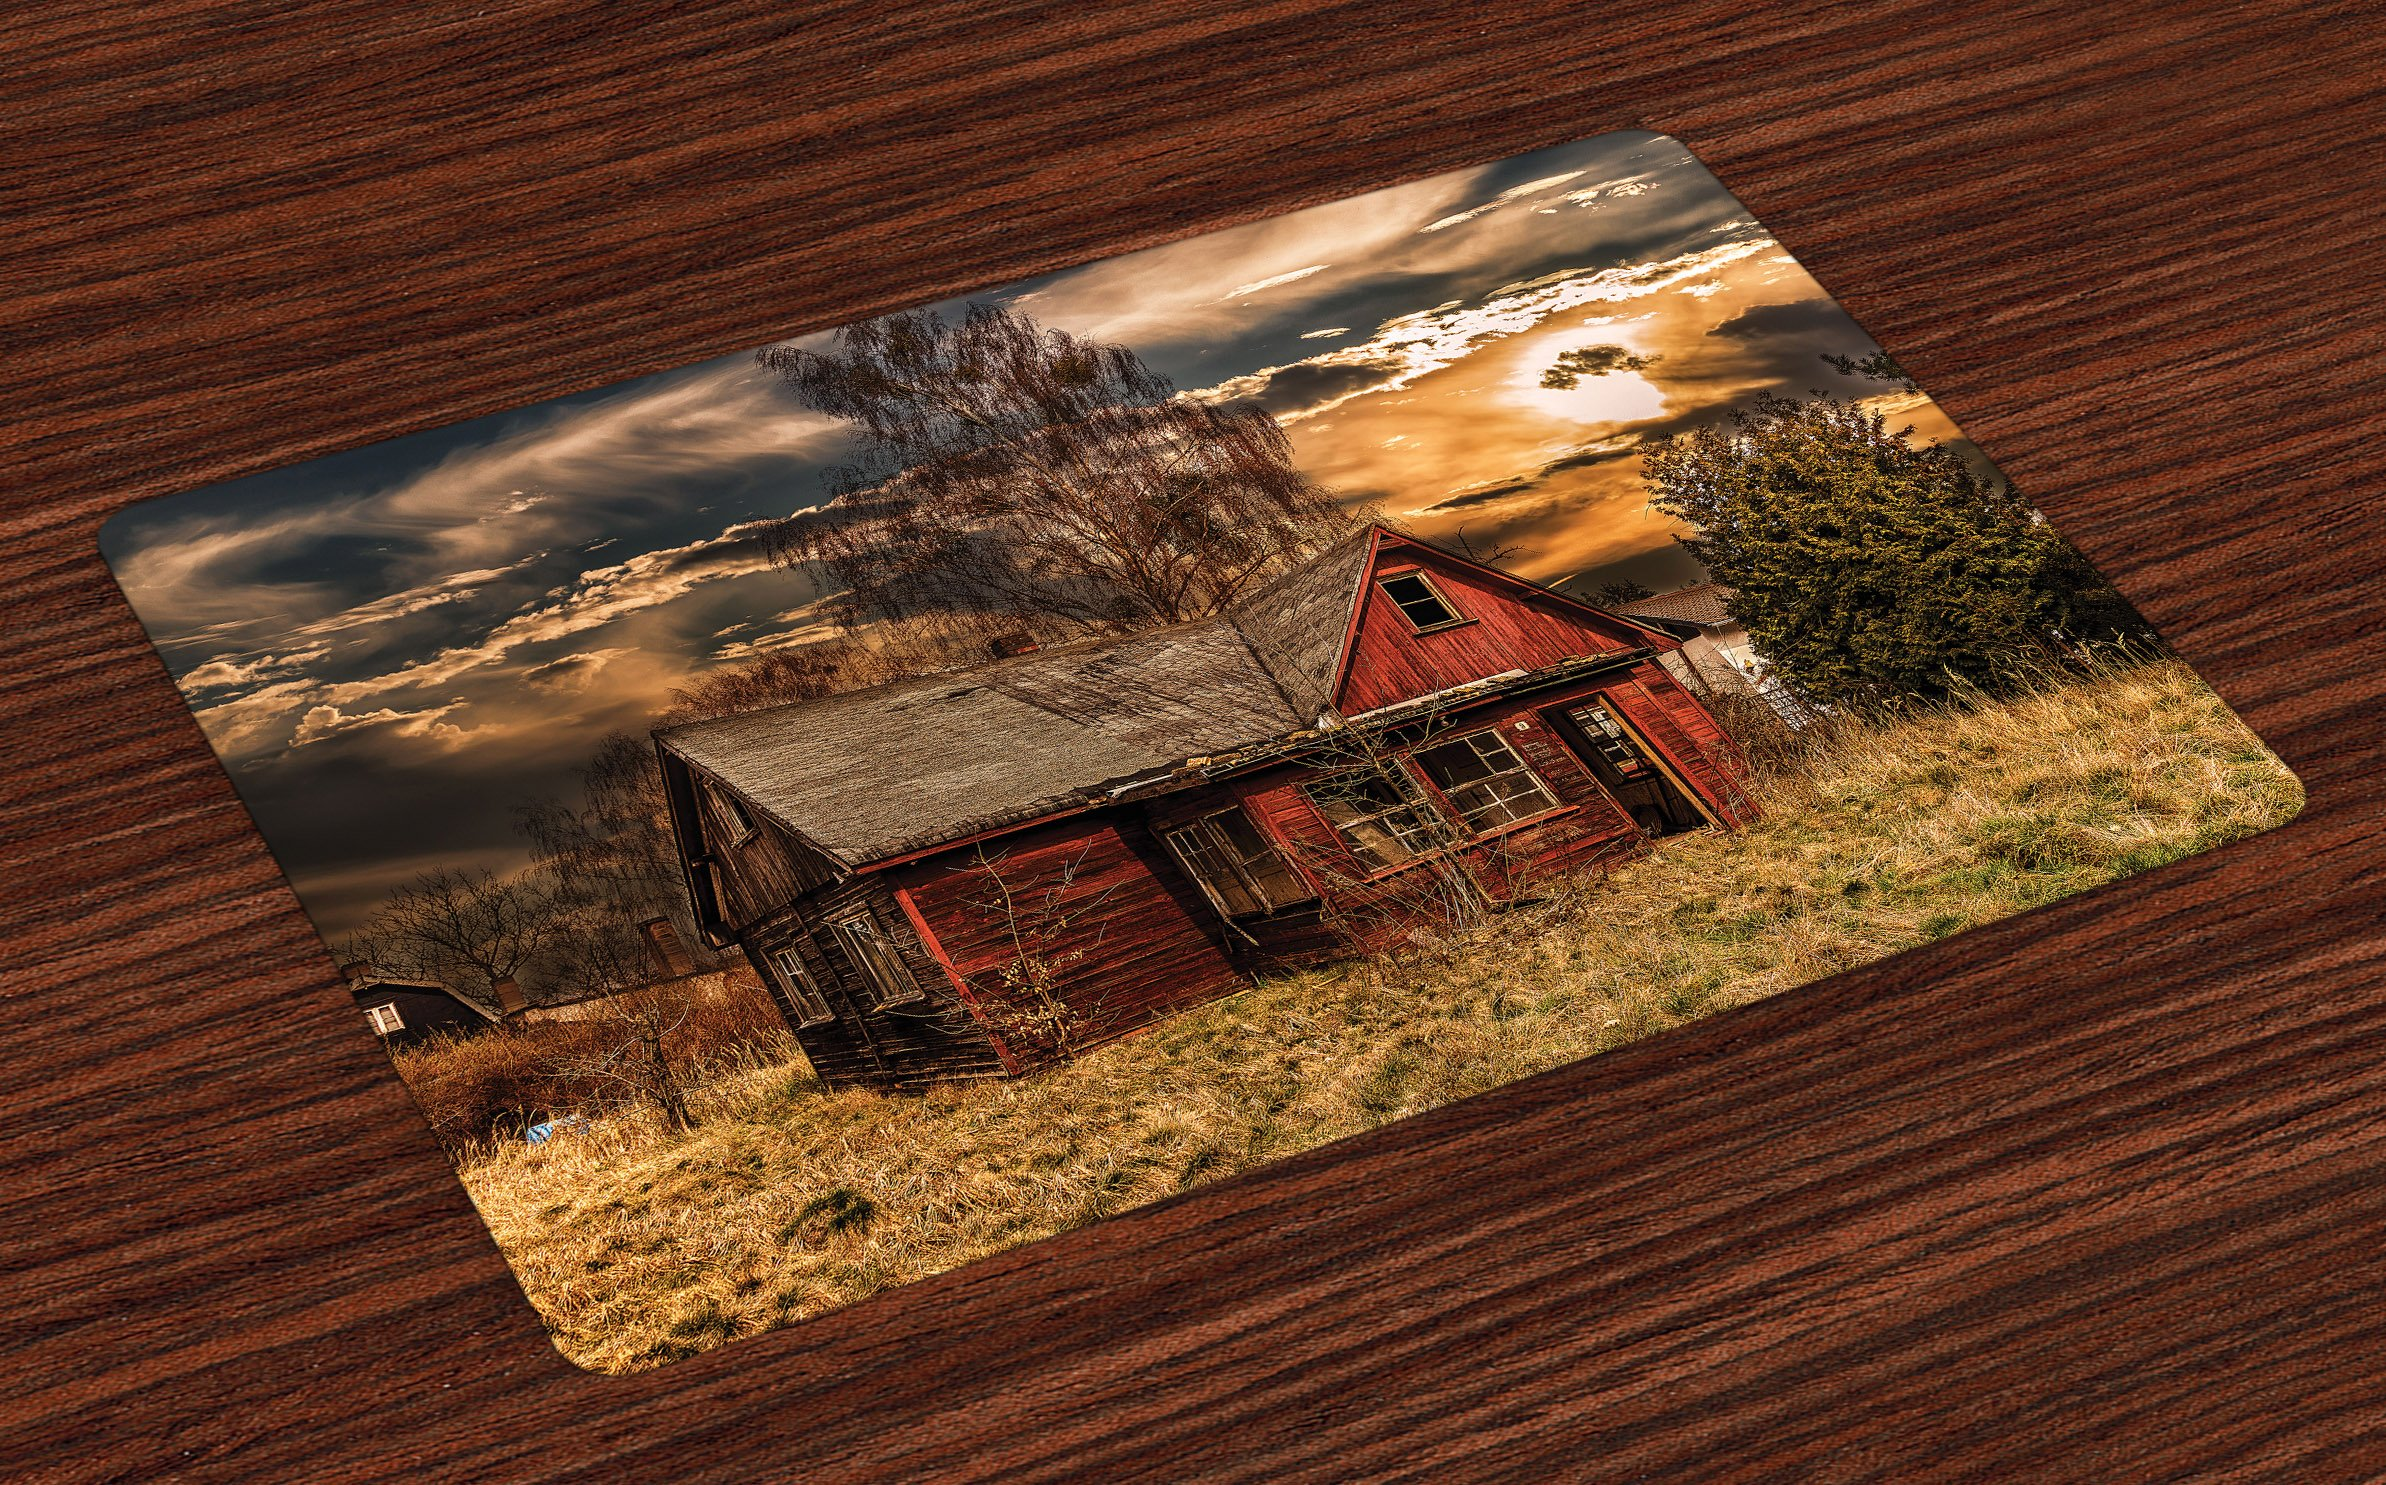 Ambesonne Scenery Place Mats Set of 4, Scary Horror Movie Themed Abandoned House in Pale Grass Garden Sunset Photo Print, Washable Fabric Placemats for Dining Room Kitchen Table Decor, Multicolor